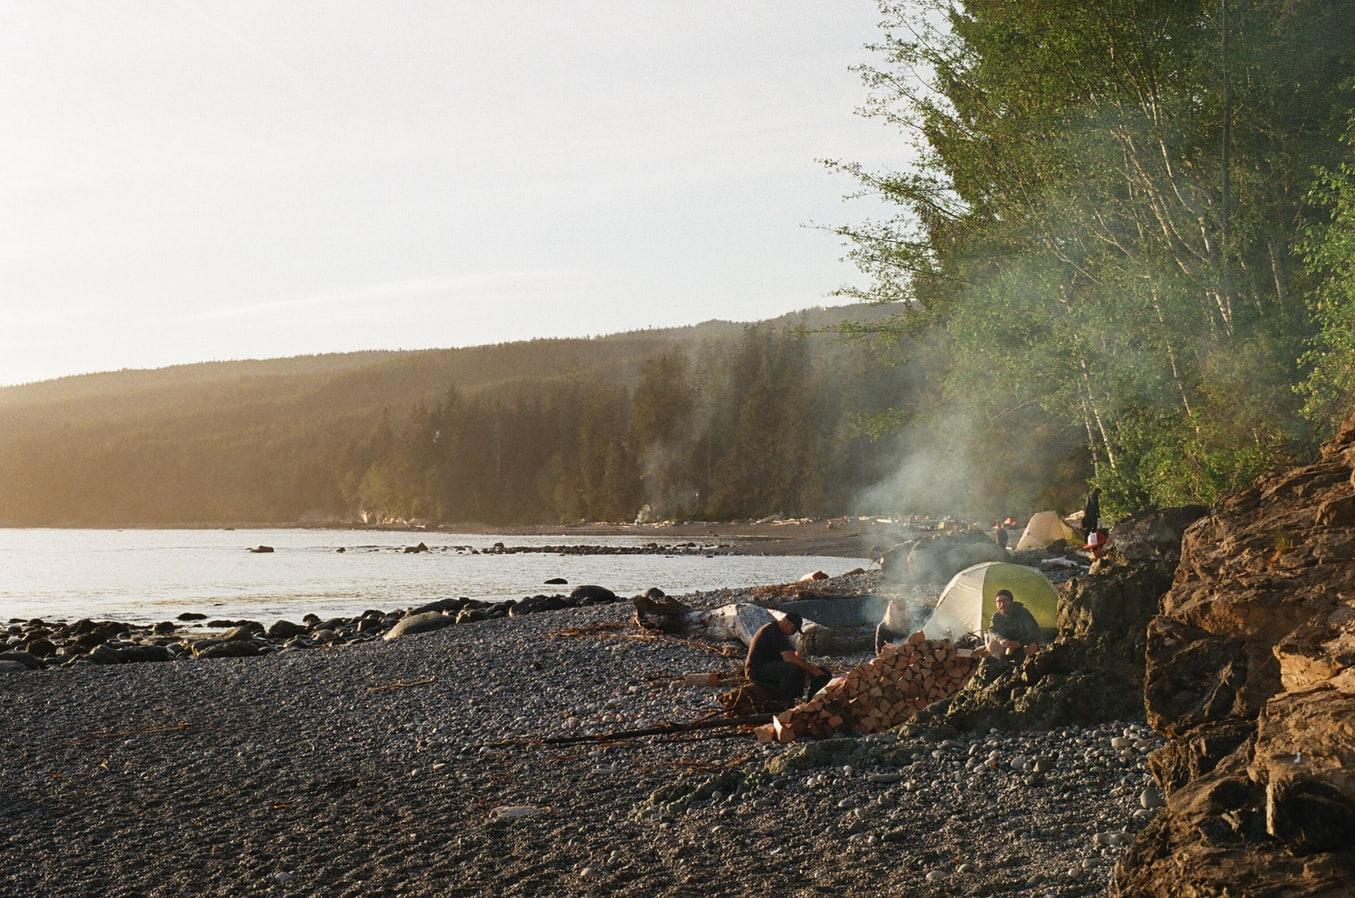 People camping on a beach